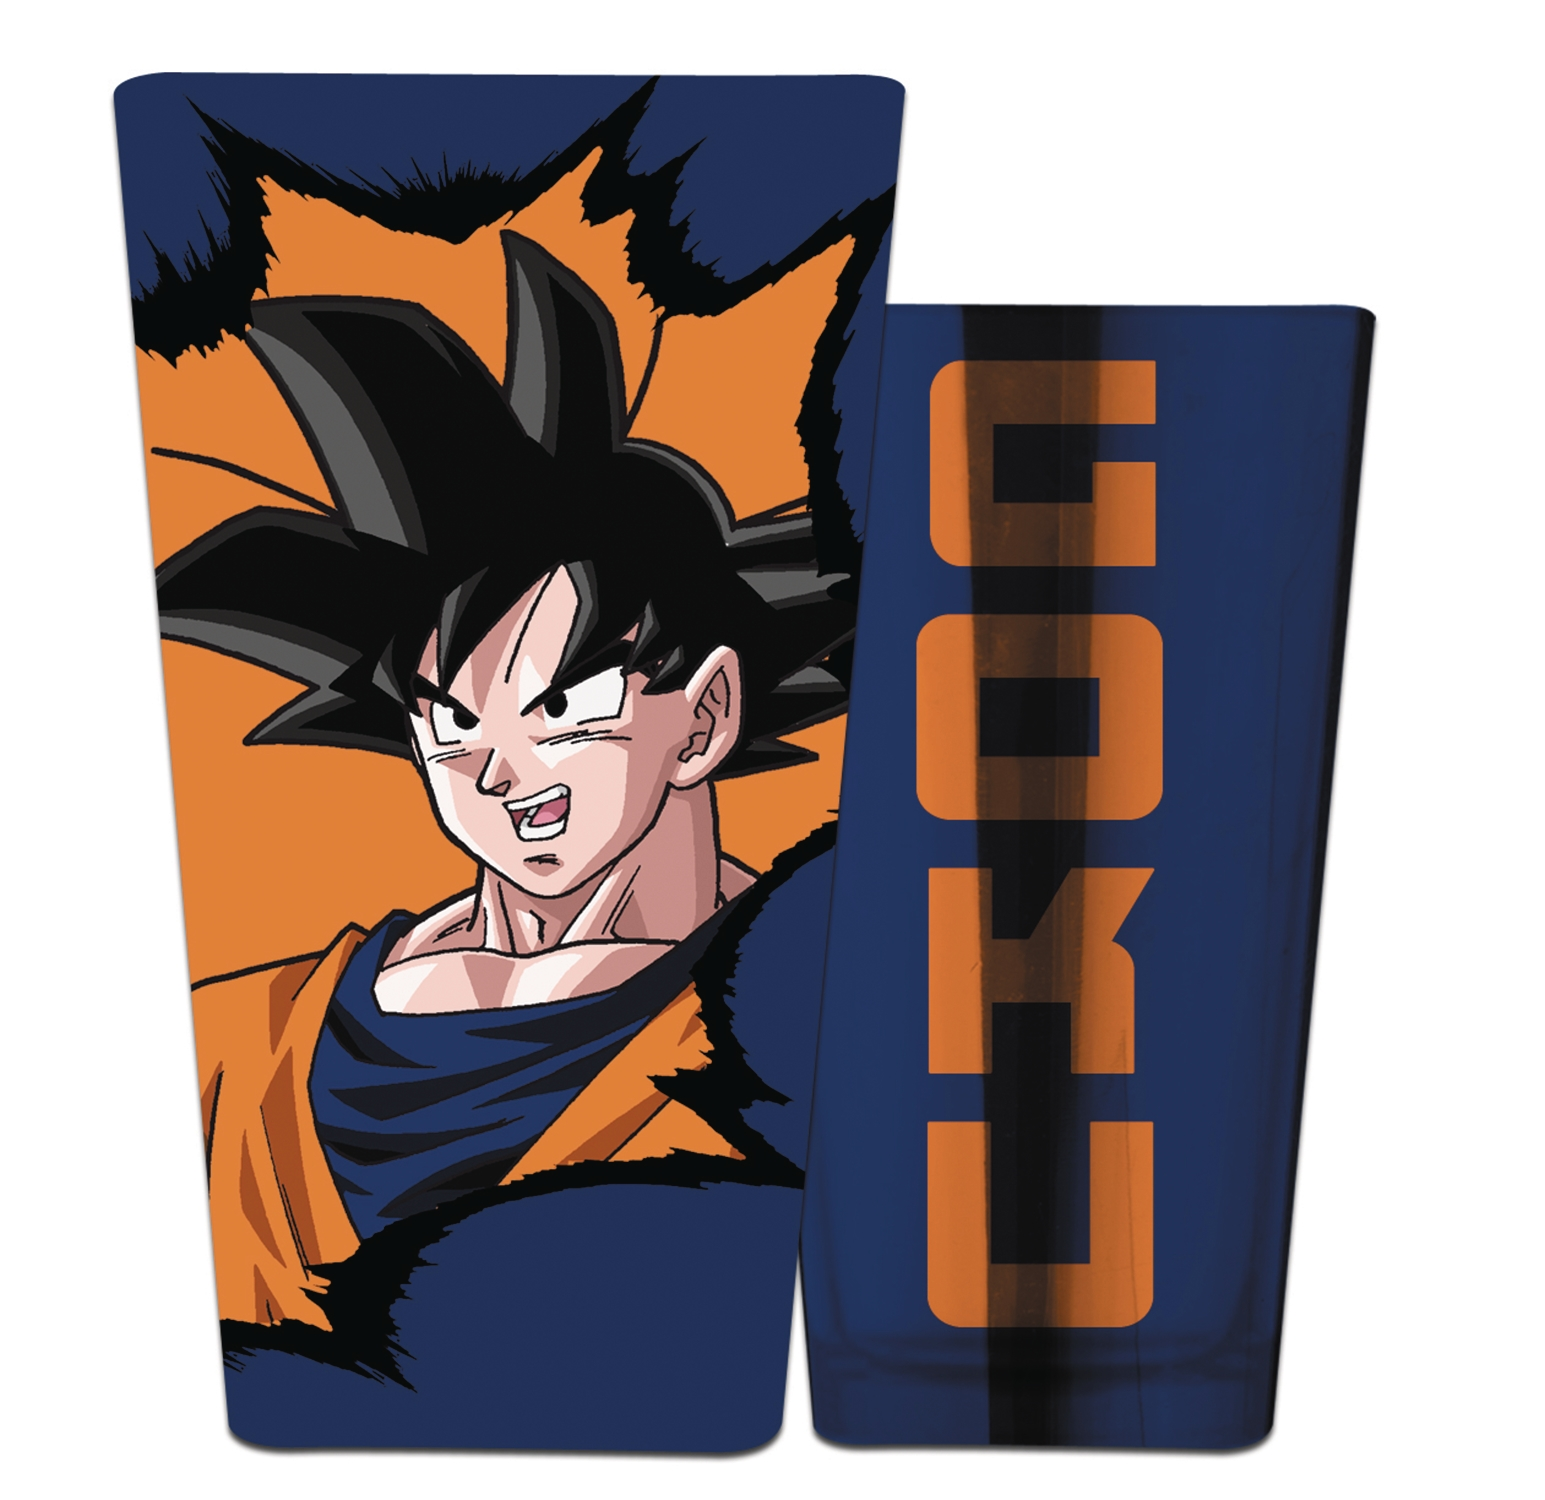 Dragonball Z: Goku Chrome Pint Glass